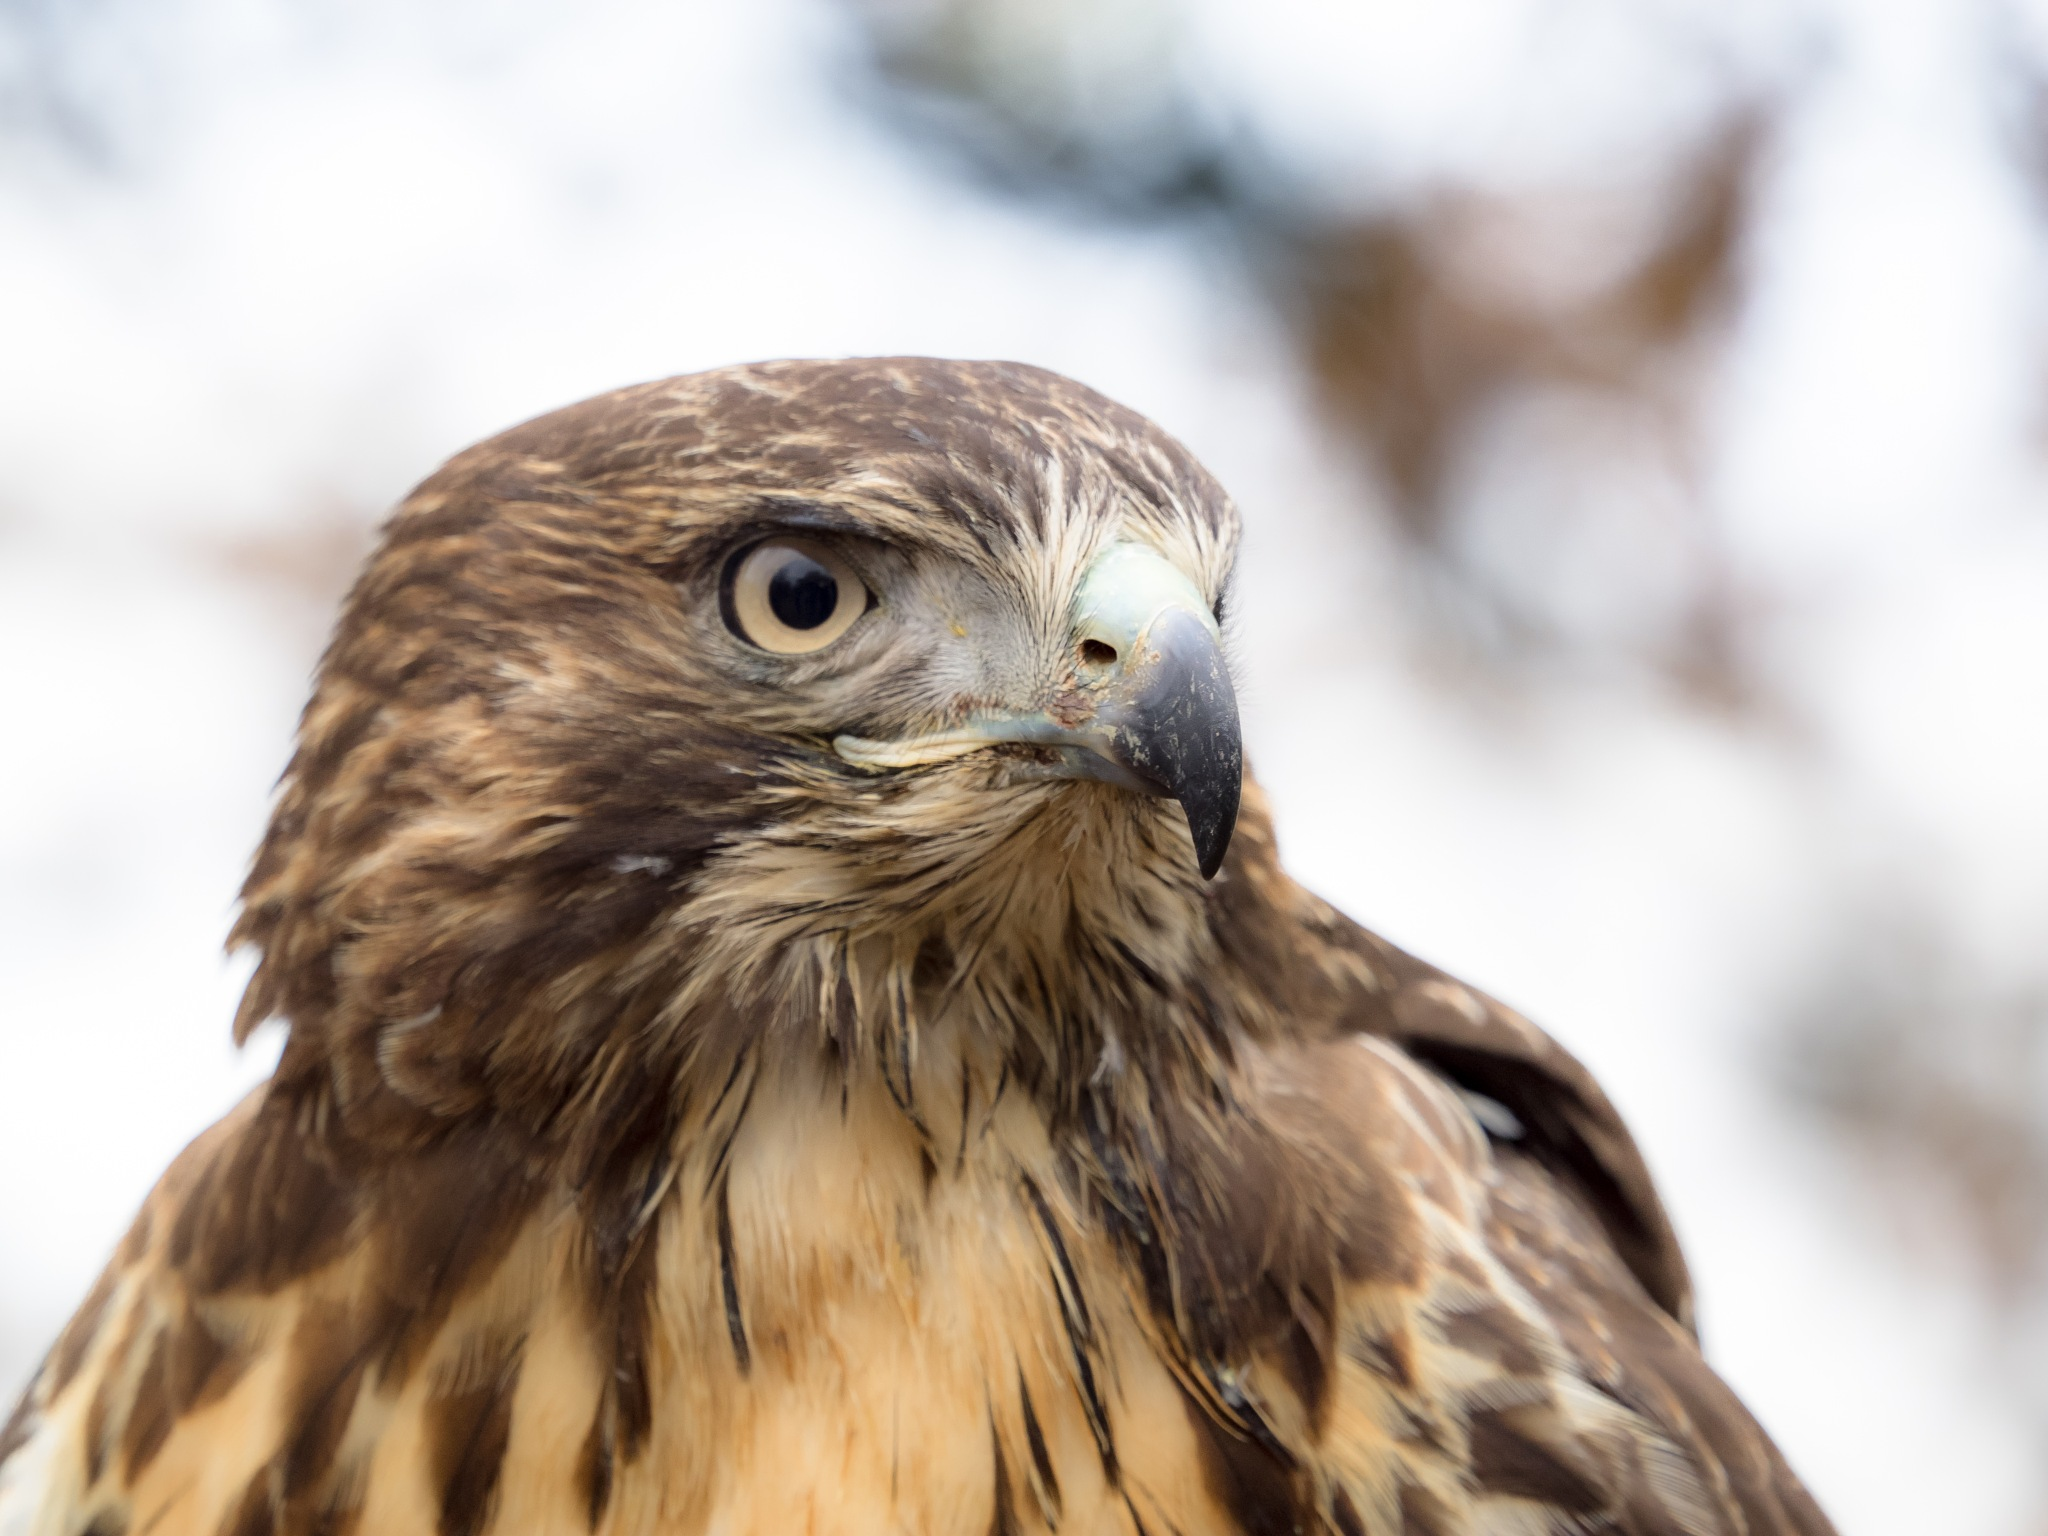 Red-tailed buzzard by Sarah Walters